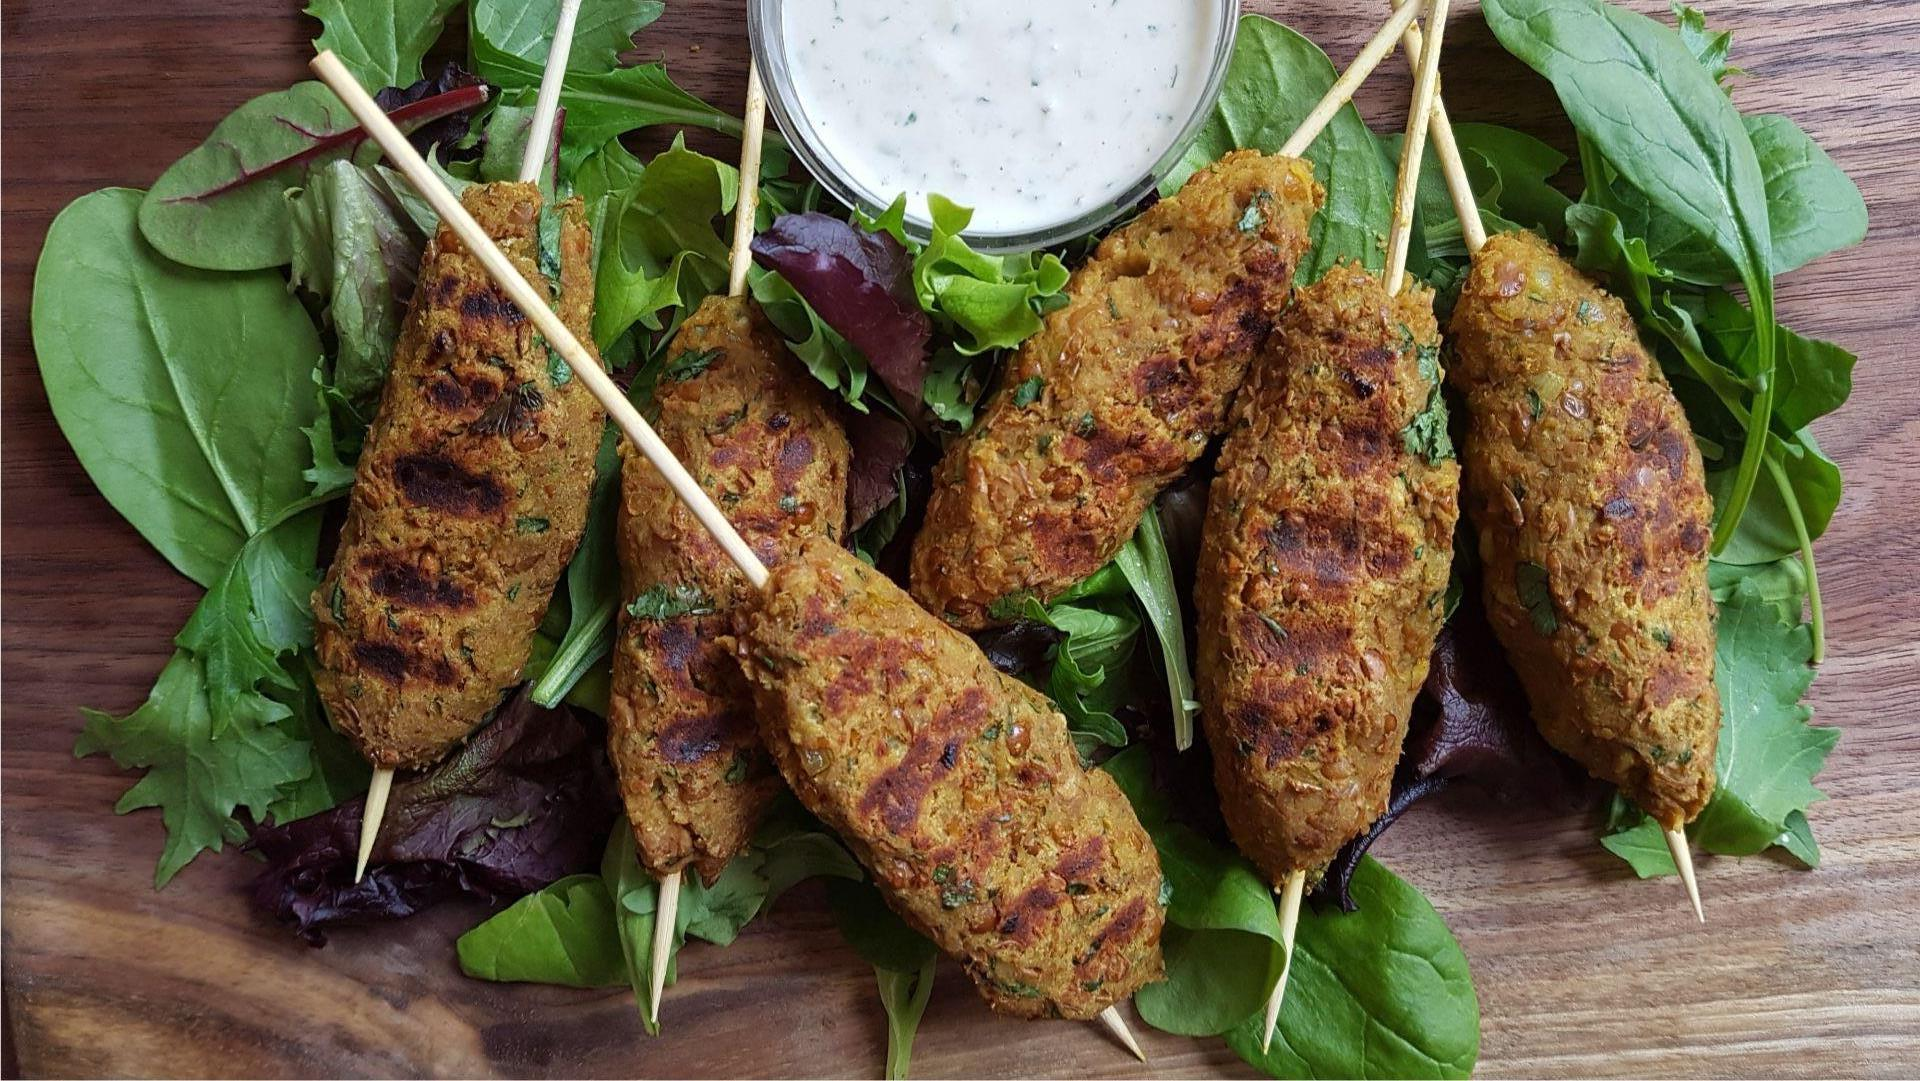 Lentil skewers with tahini sauce